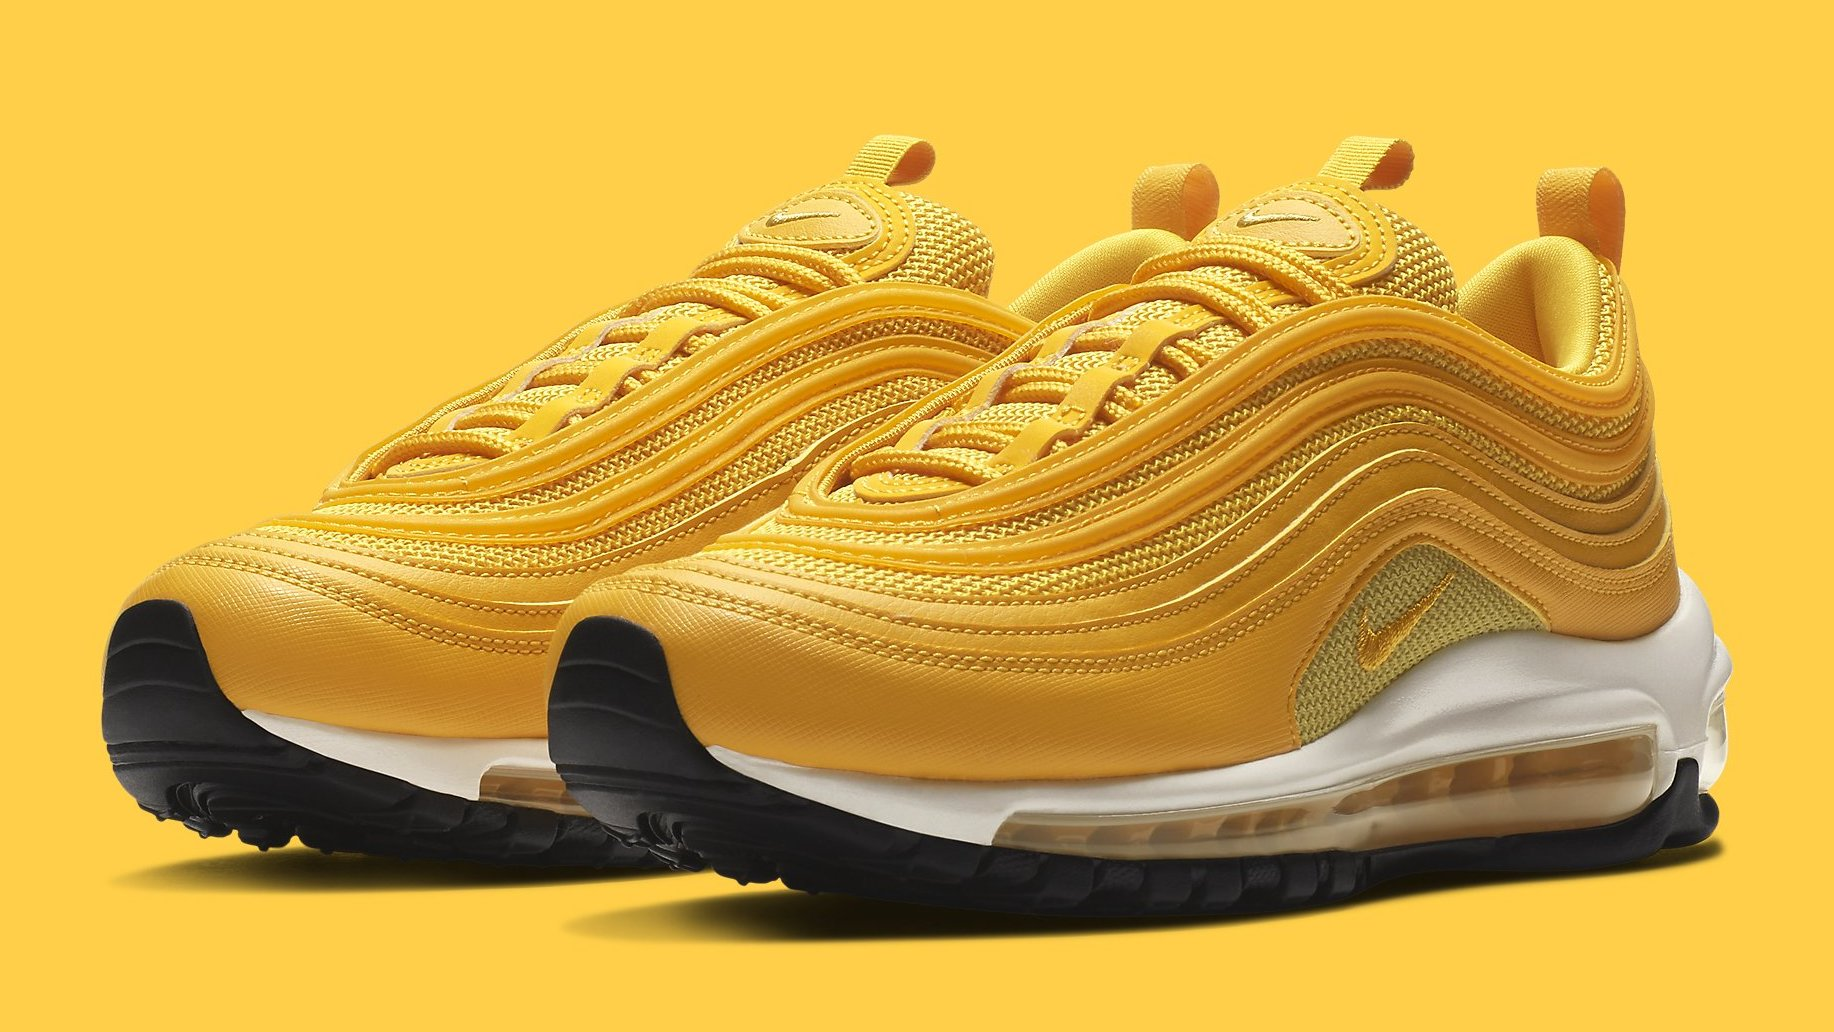 Nike Air Max 97 Mustard Release Date 921733 701 Sole Collector